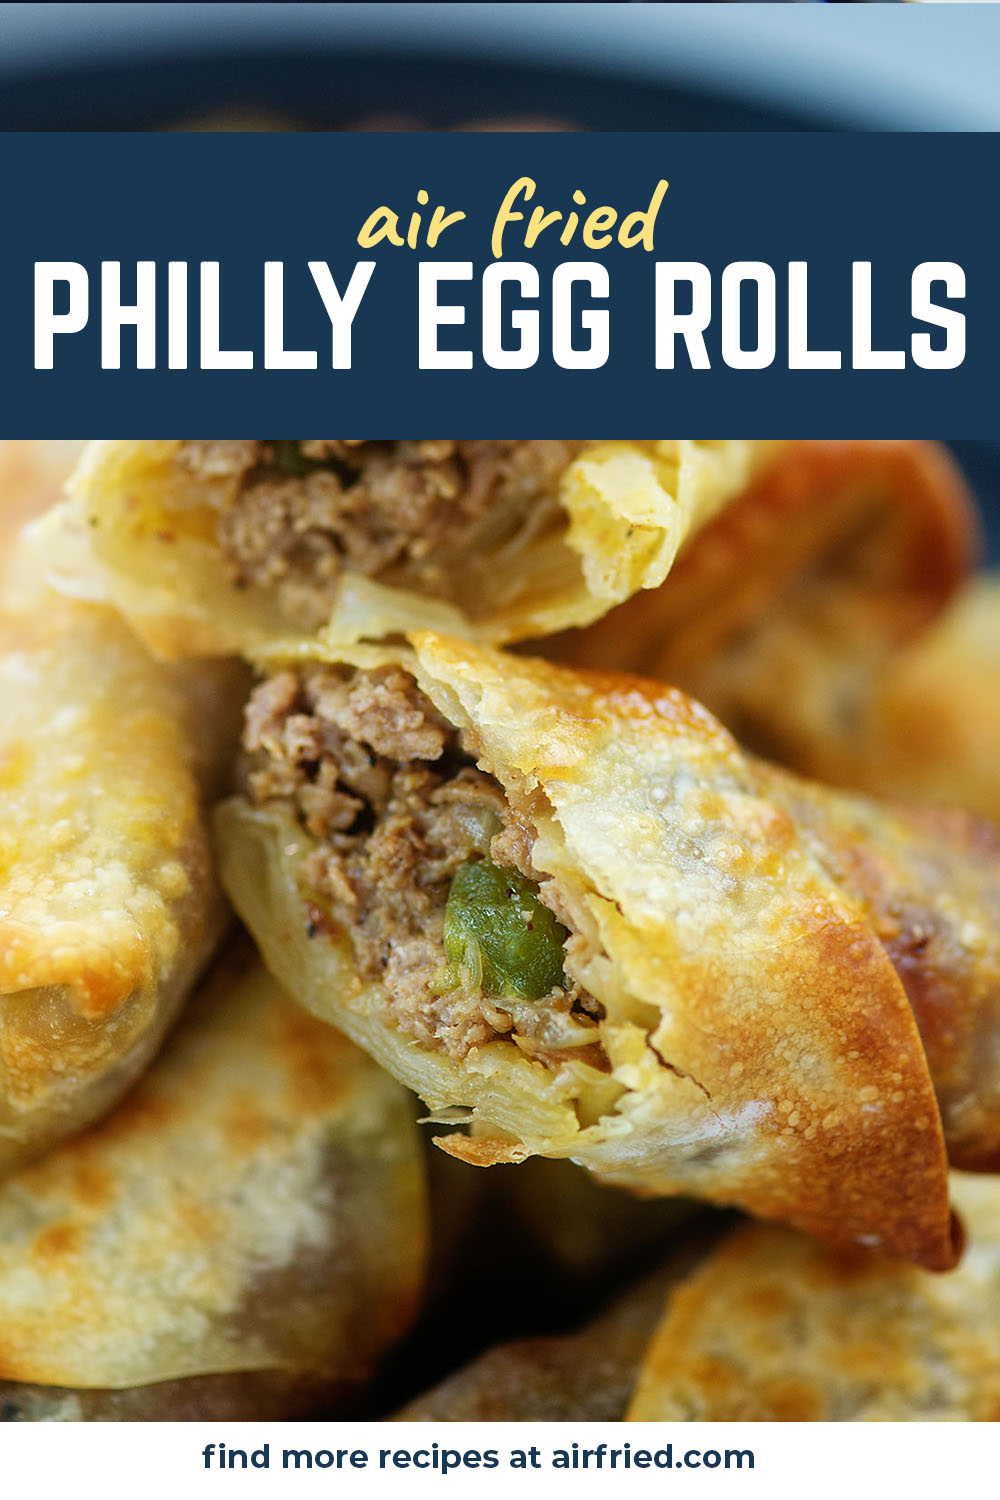 Crispy egg rolls with a wonderful philly cheesesteak center!